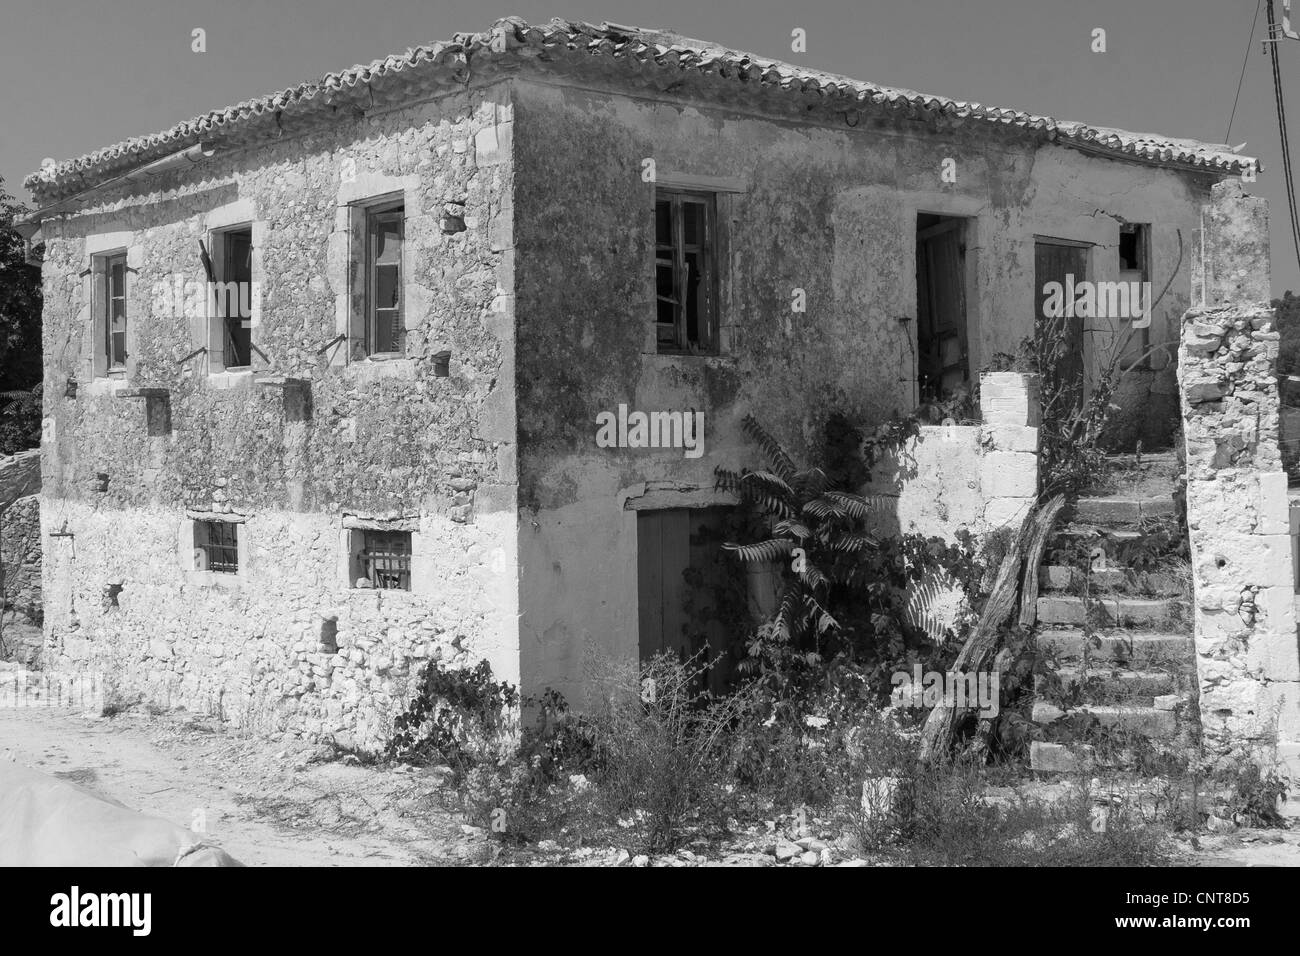 Volimes deserted house - Stock Image